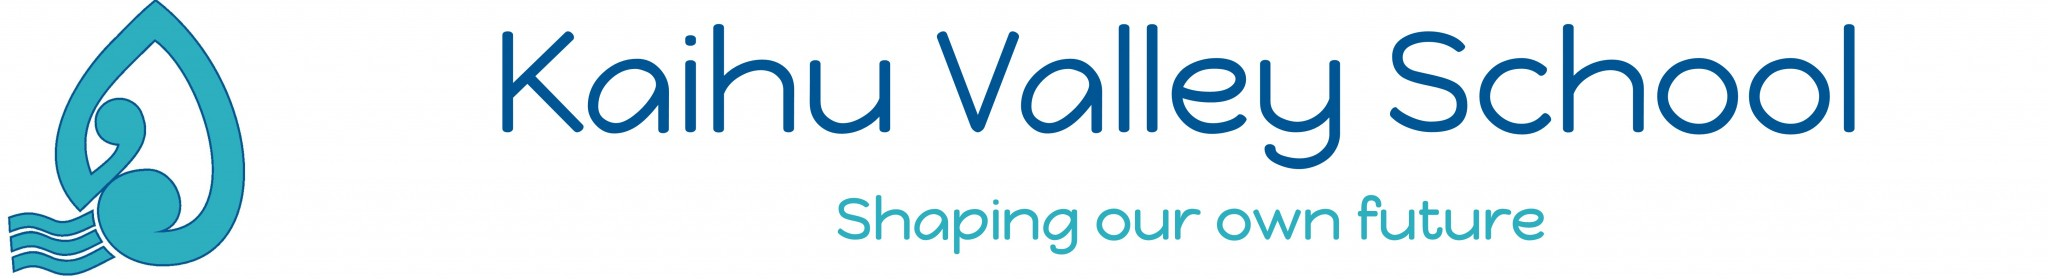 Kaihu Valley School Logo